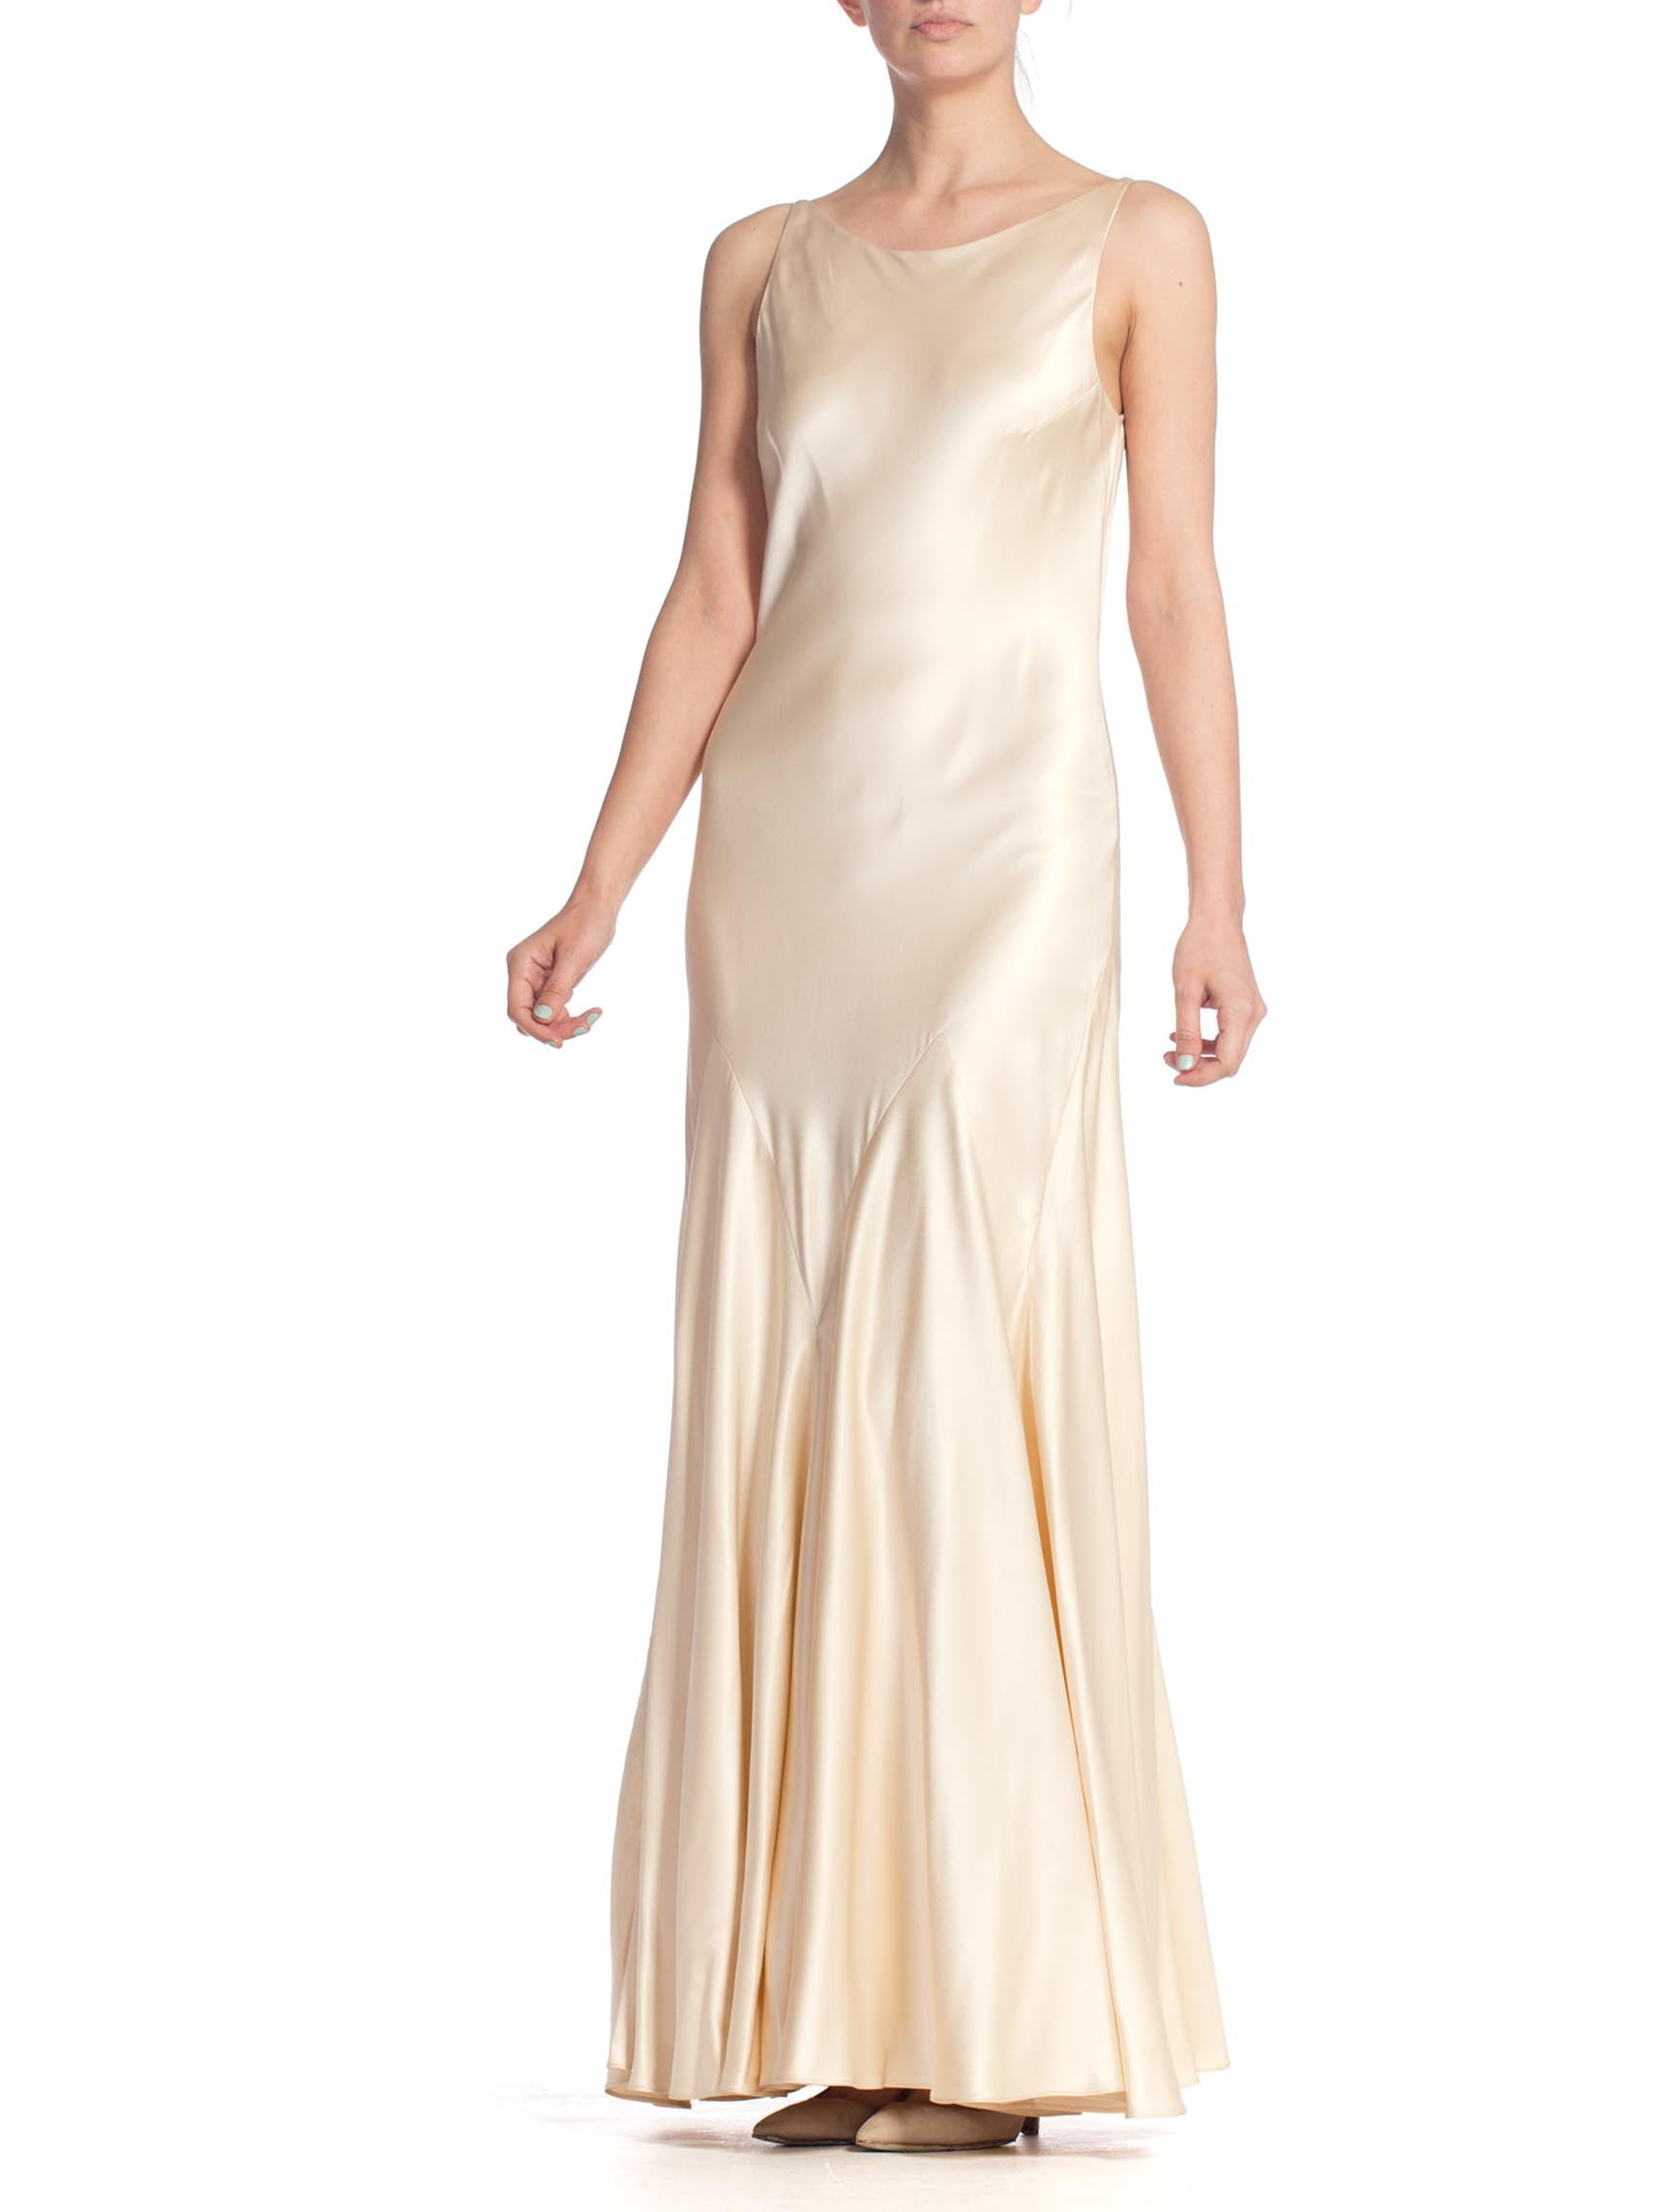 1990S Cream Silk Charmeuse 1930'S Art Deco Old Hollywood Style Bias Cut Vintage Bridal Gown